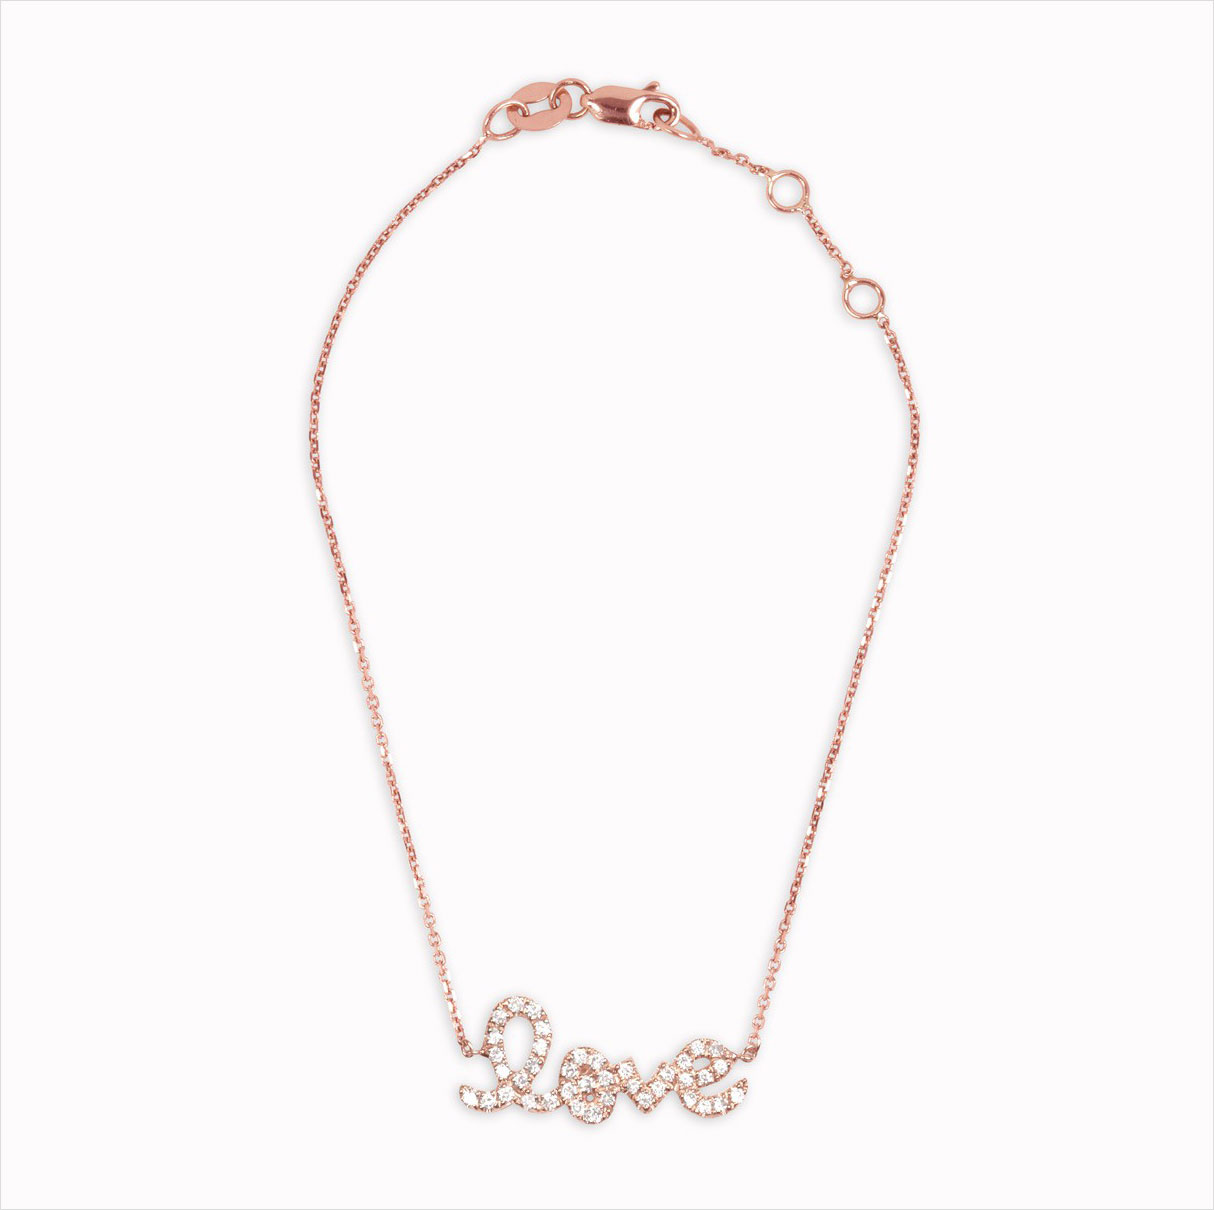 Gearys Sydney Evan love rose gold bracelet valentine's day gift ideas